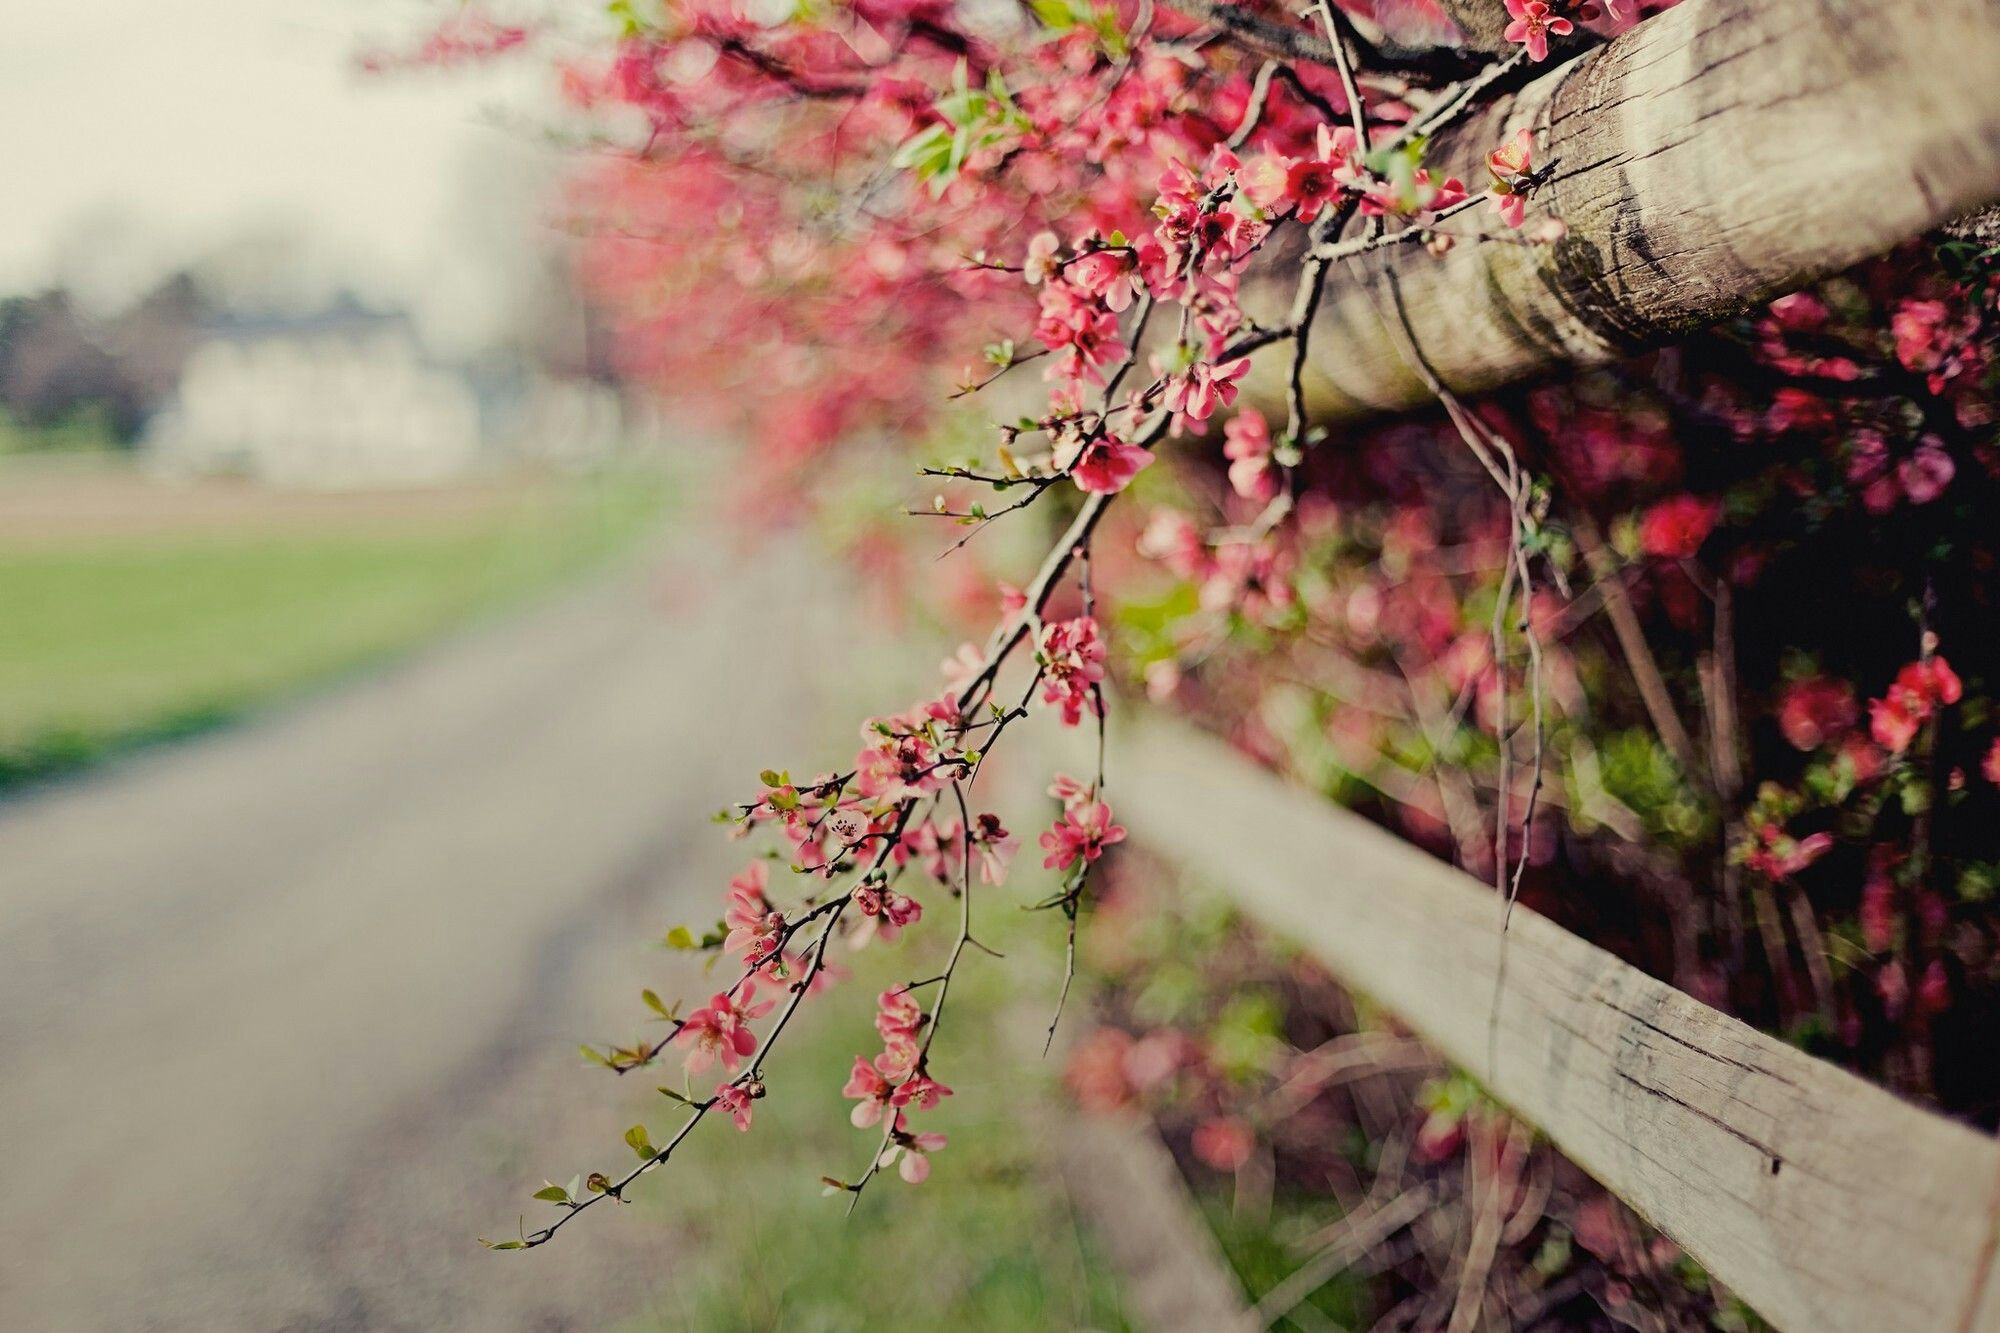 Dslr Background Editing Flowers Wallpaper Fence